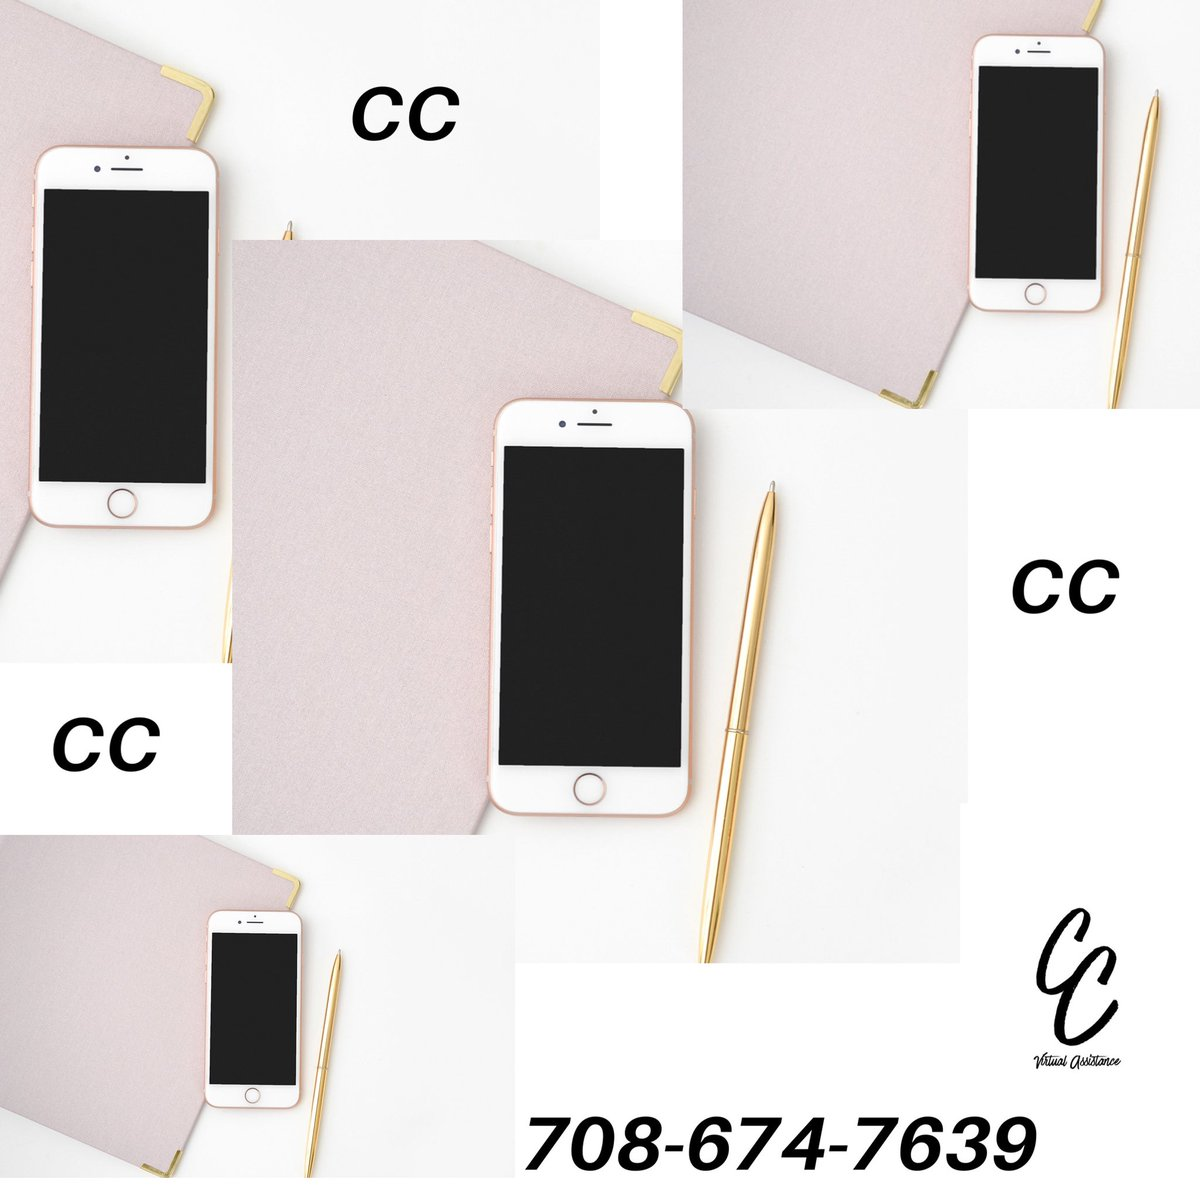 CC Virtual Assistance is NOW ACCEPTING NEW CLIENTS!! CALL or EMAIL FOR FREE CONSULTATION:  708-674-7639 ccvirtualassistant18@gmail.com  #virtualassistant #virtualassistants #virtualassistantservices #virtualassistance #virtualassistantcommunity #virtualassistantservicepic.twitter.com/XmFwyFL85c